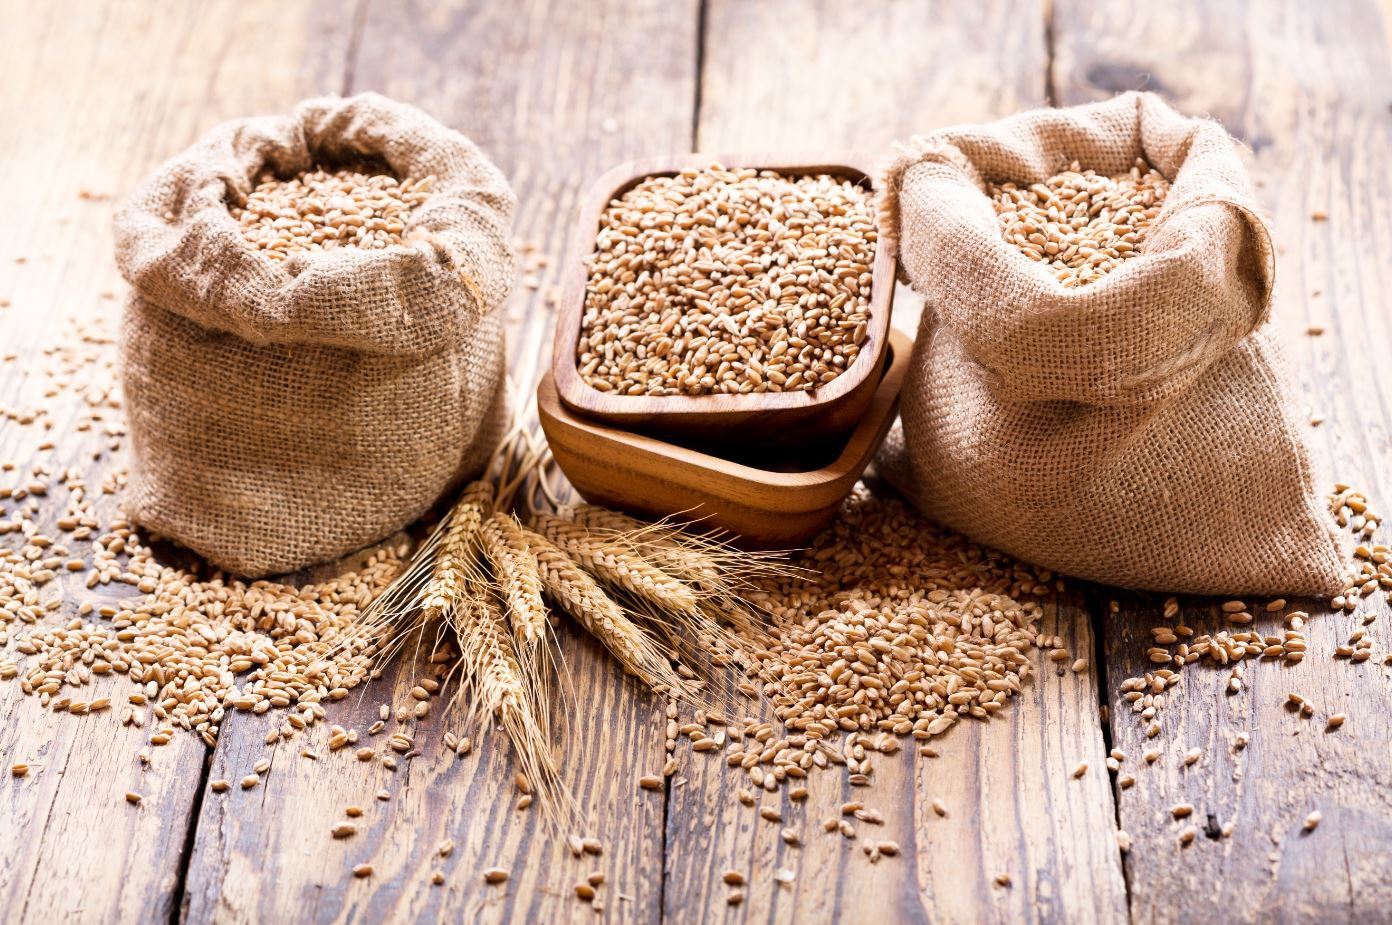 Grain-based foods on a low FODMAP diet